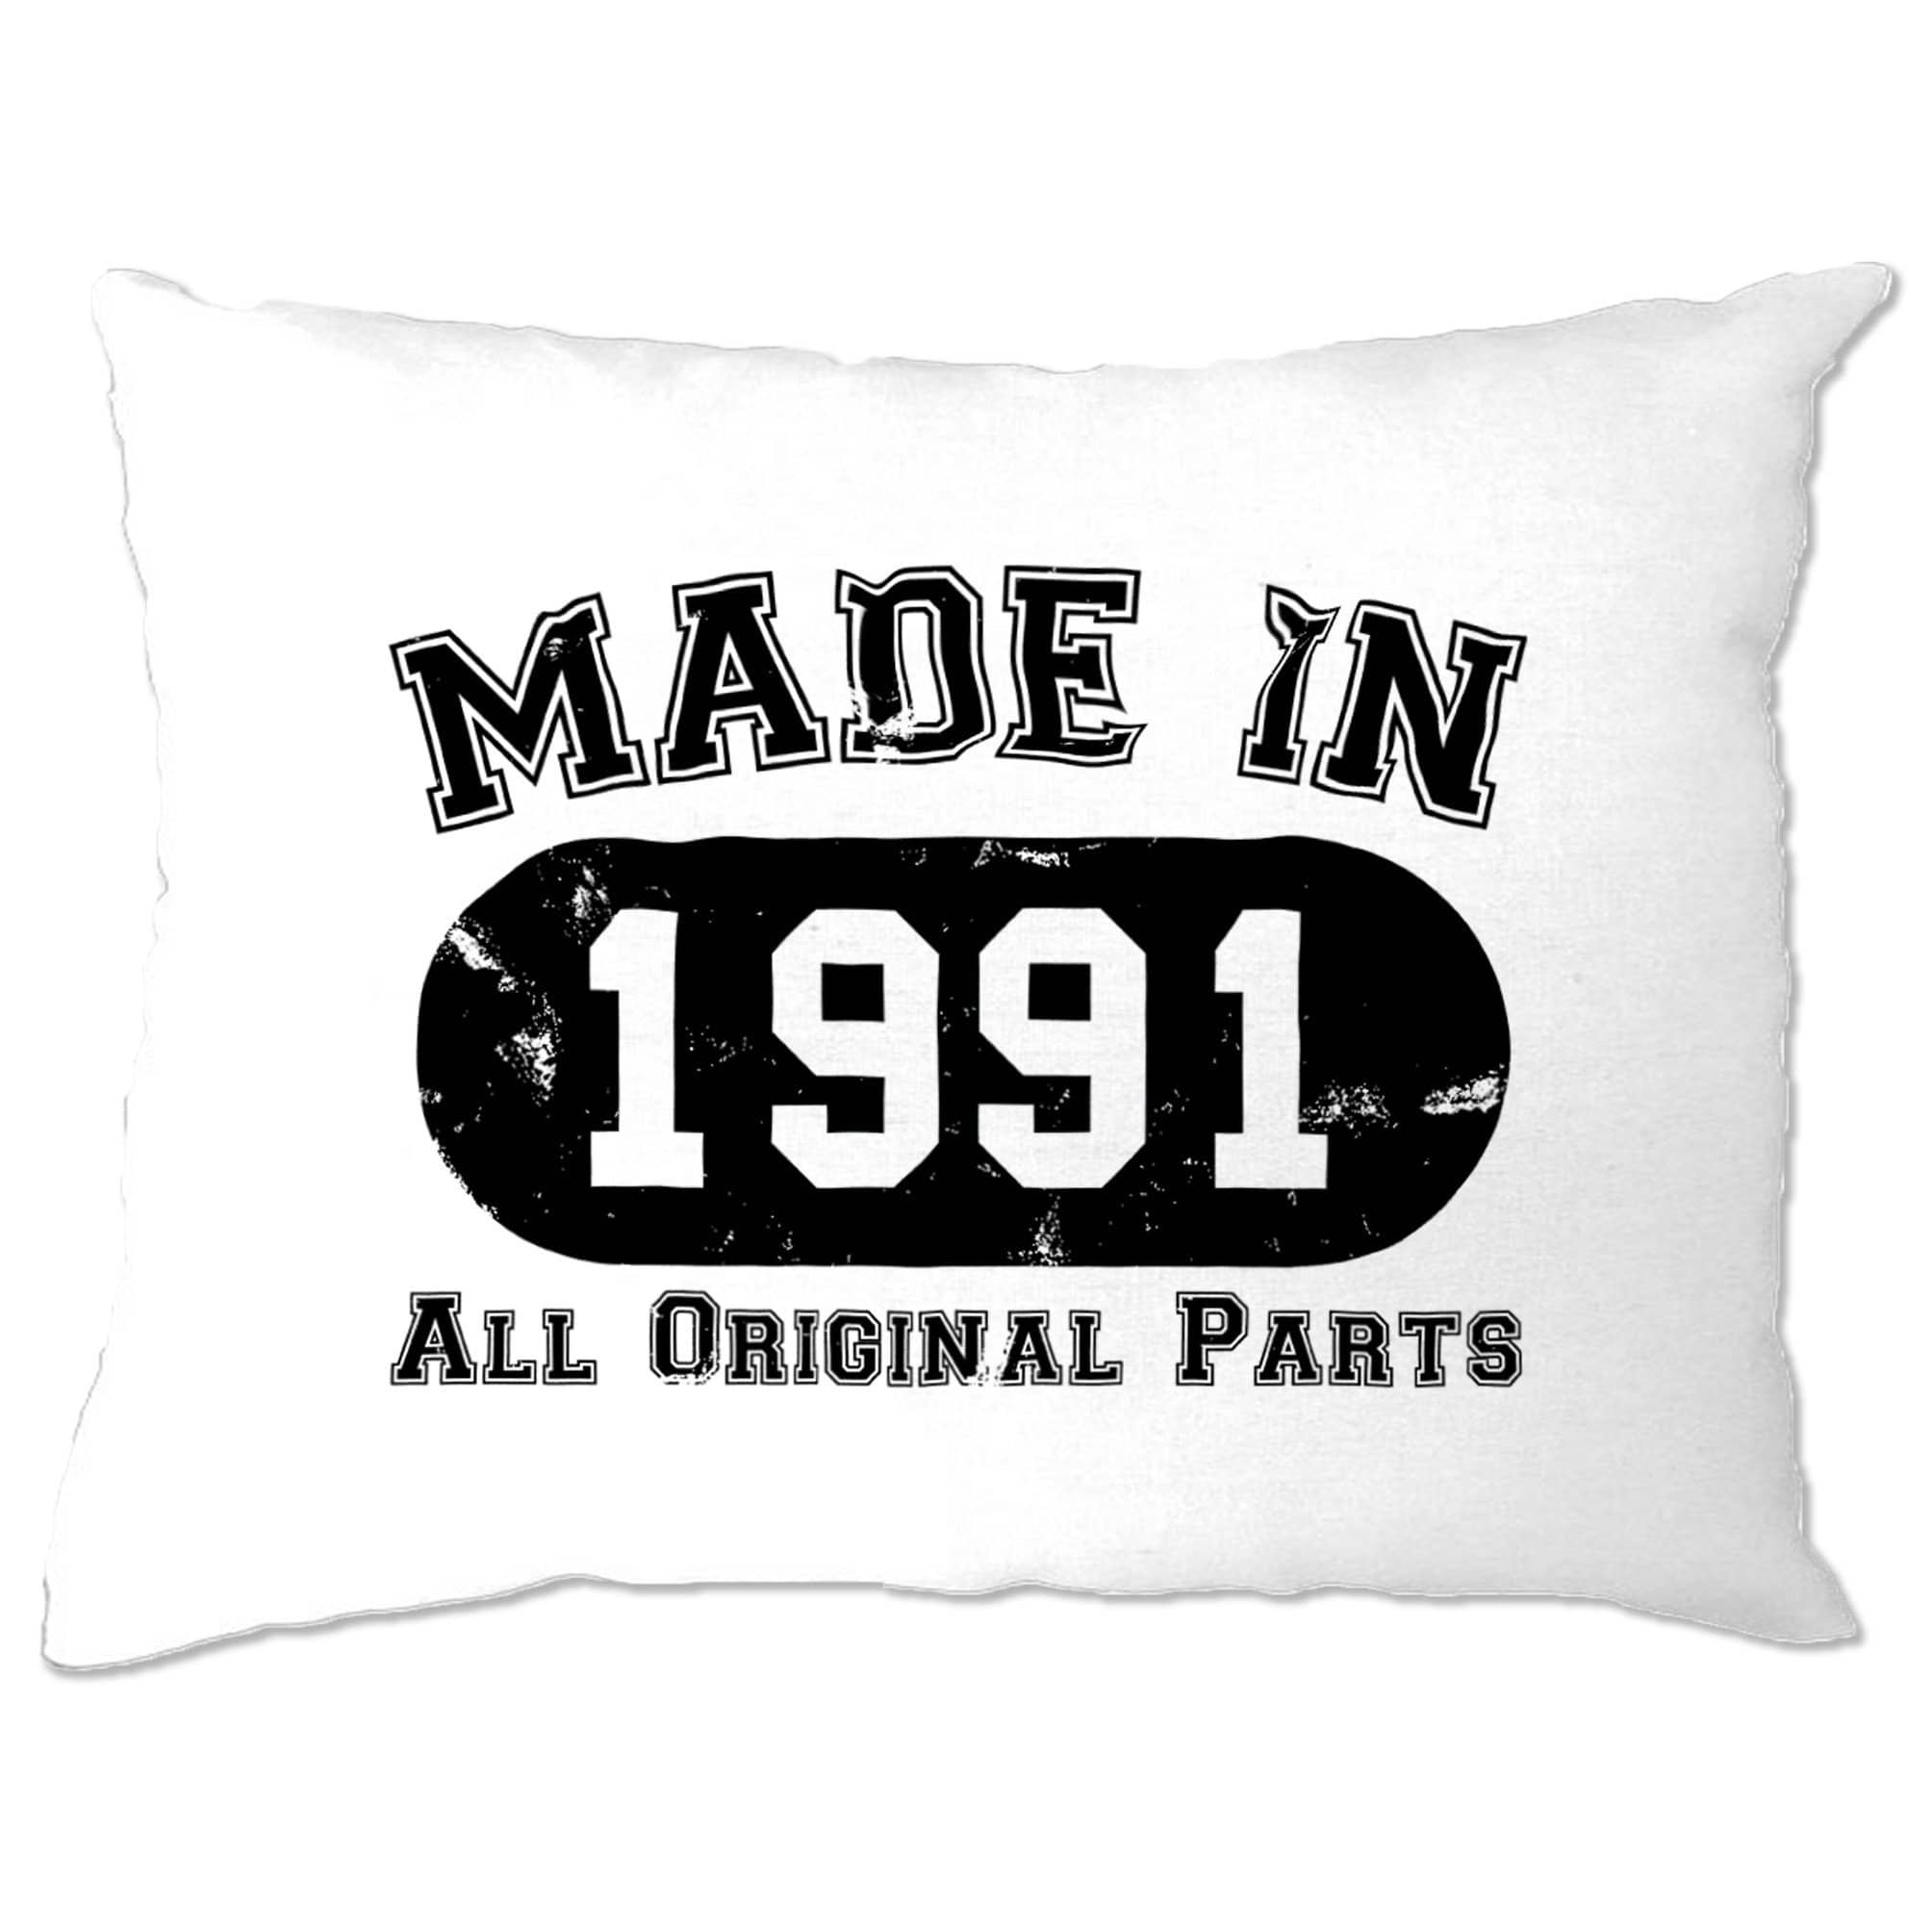 Made in 1991 All Original Parts Pillow Case [Distressed]